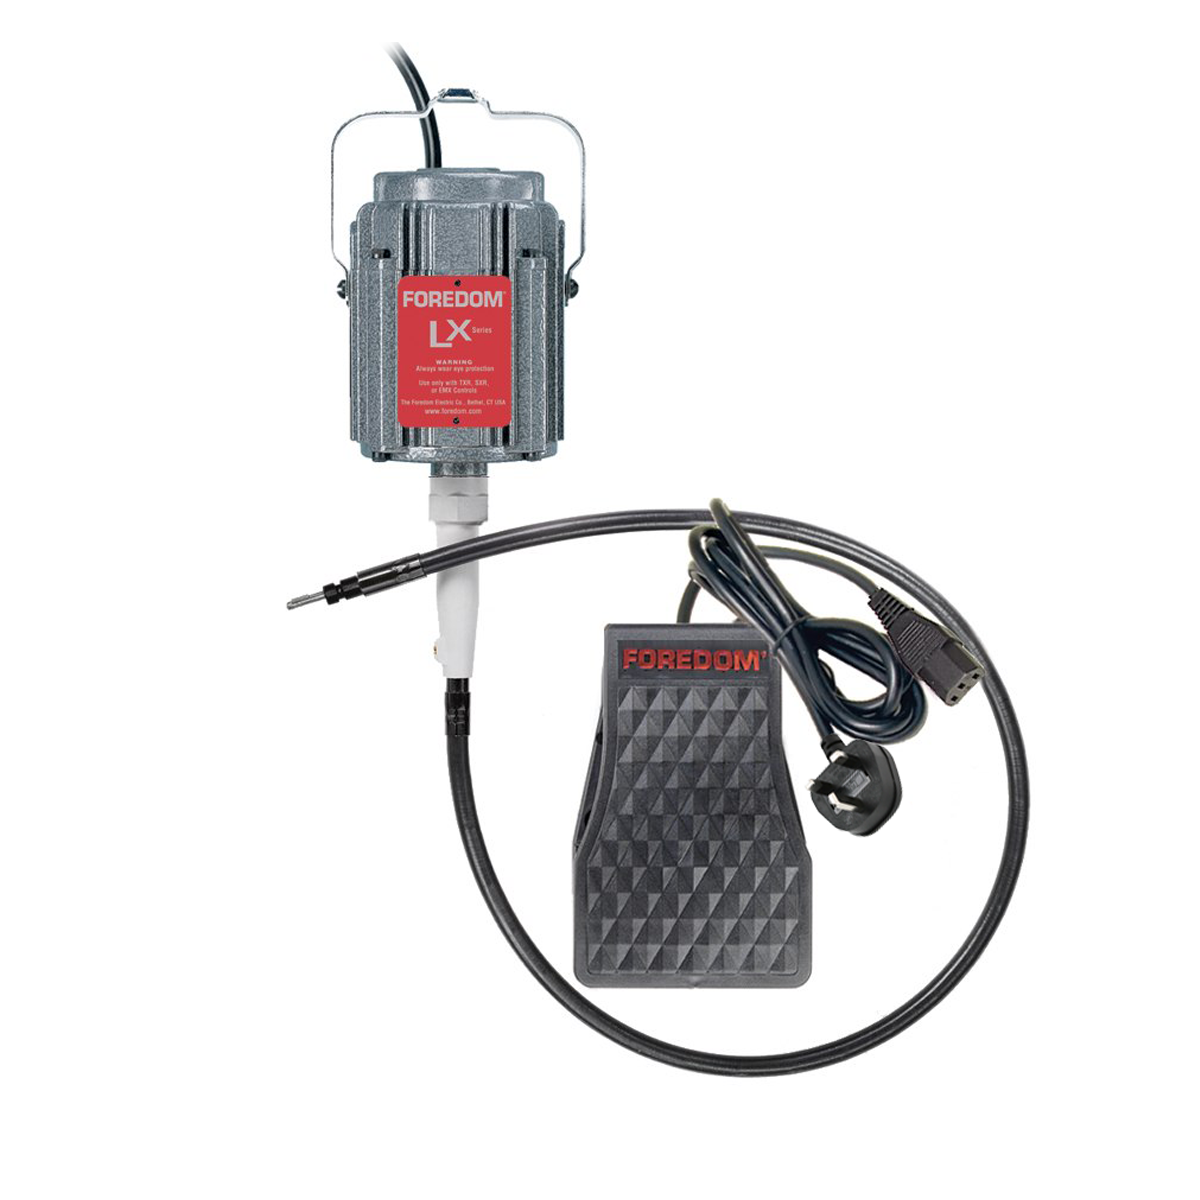 Foredom Motor LX High Torque Pendant/Hang-up Motor With Foot Control